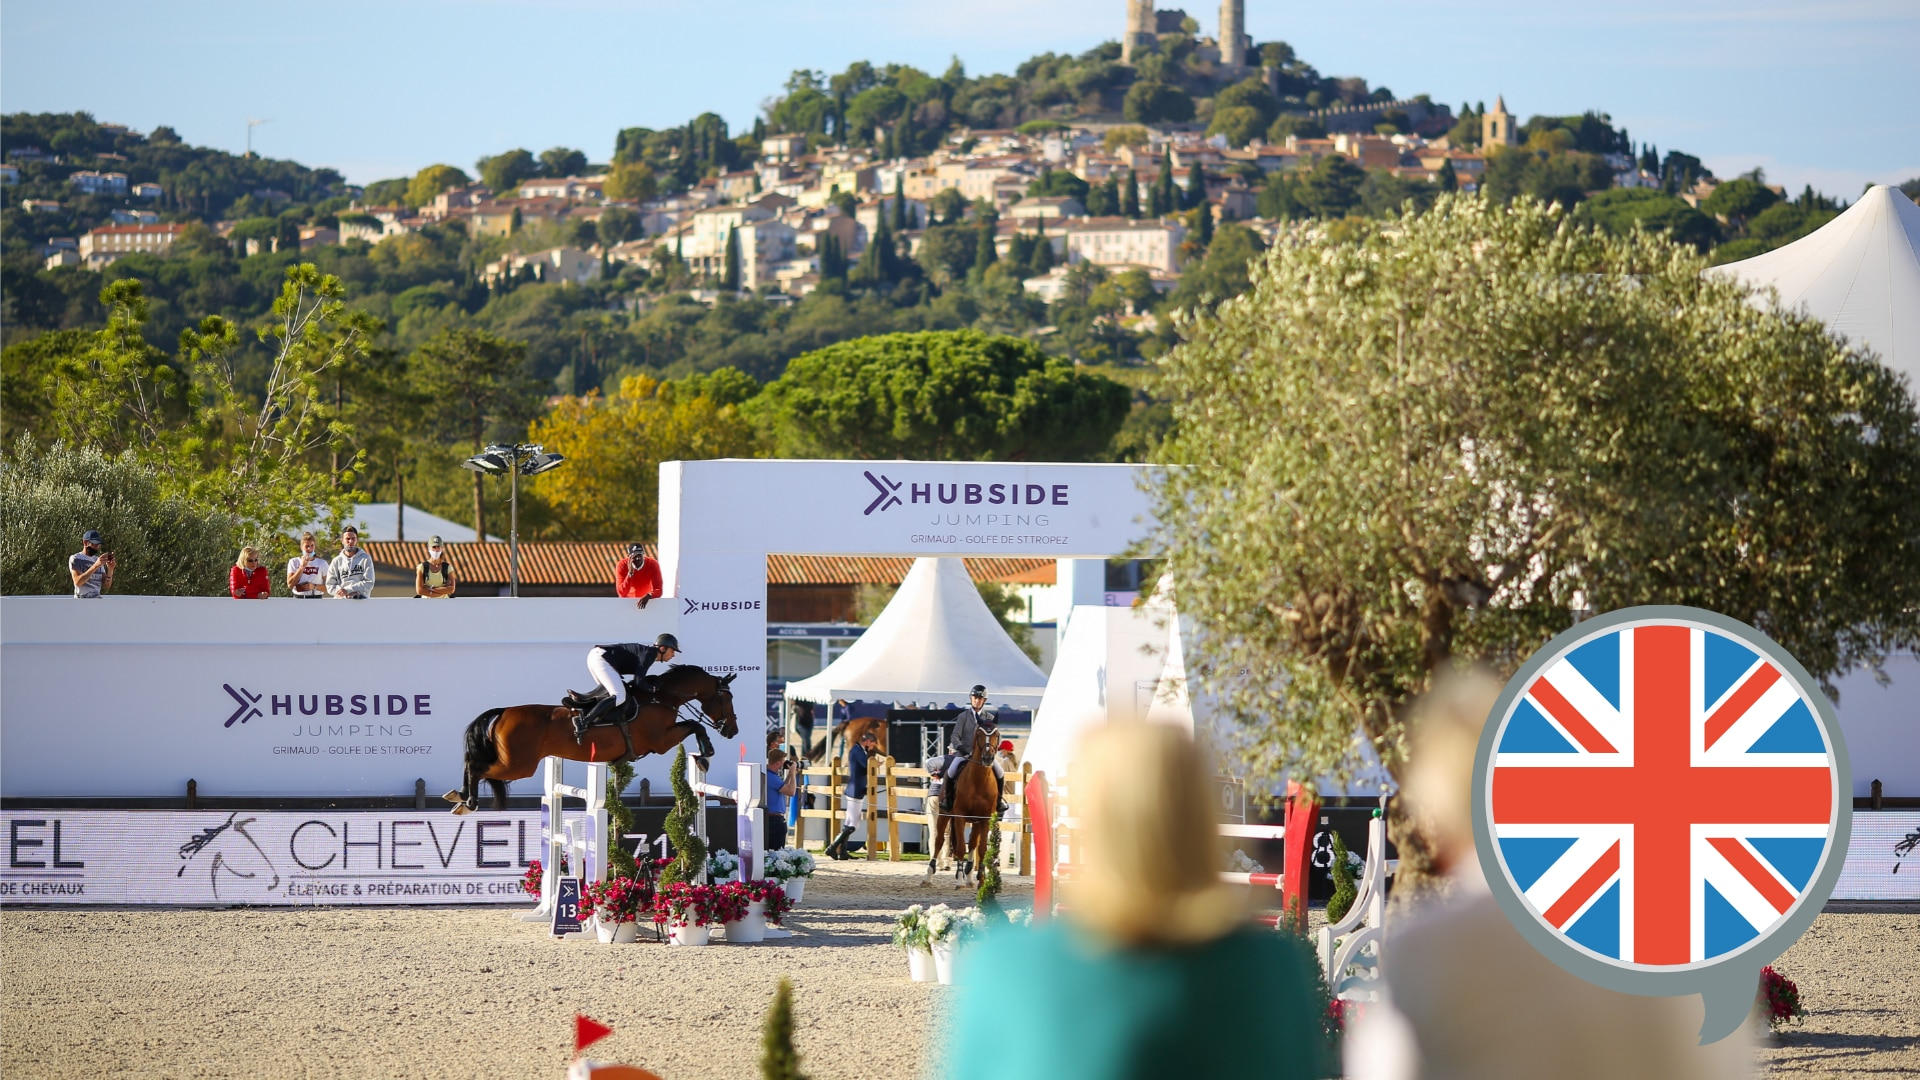 Hubside Jumping, St Tropez 2021 - English Commentary